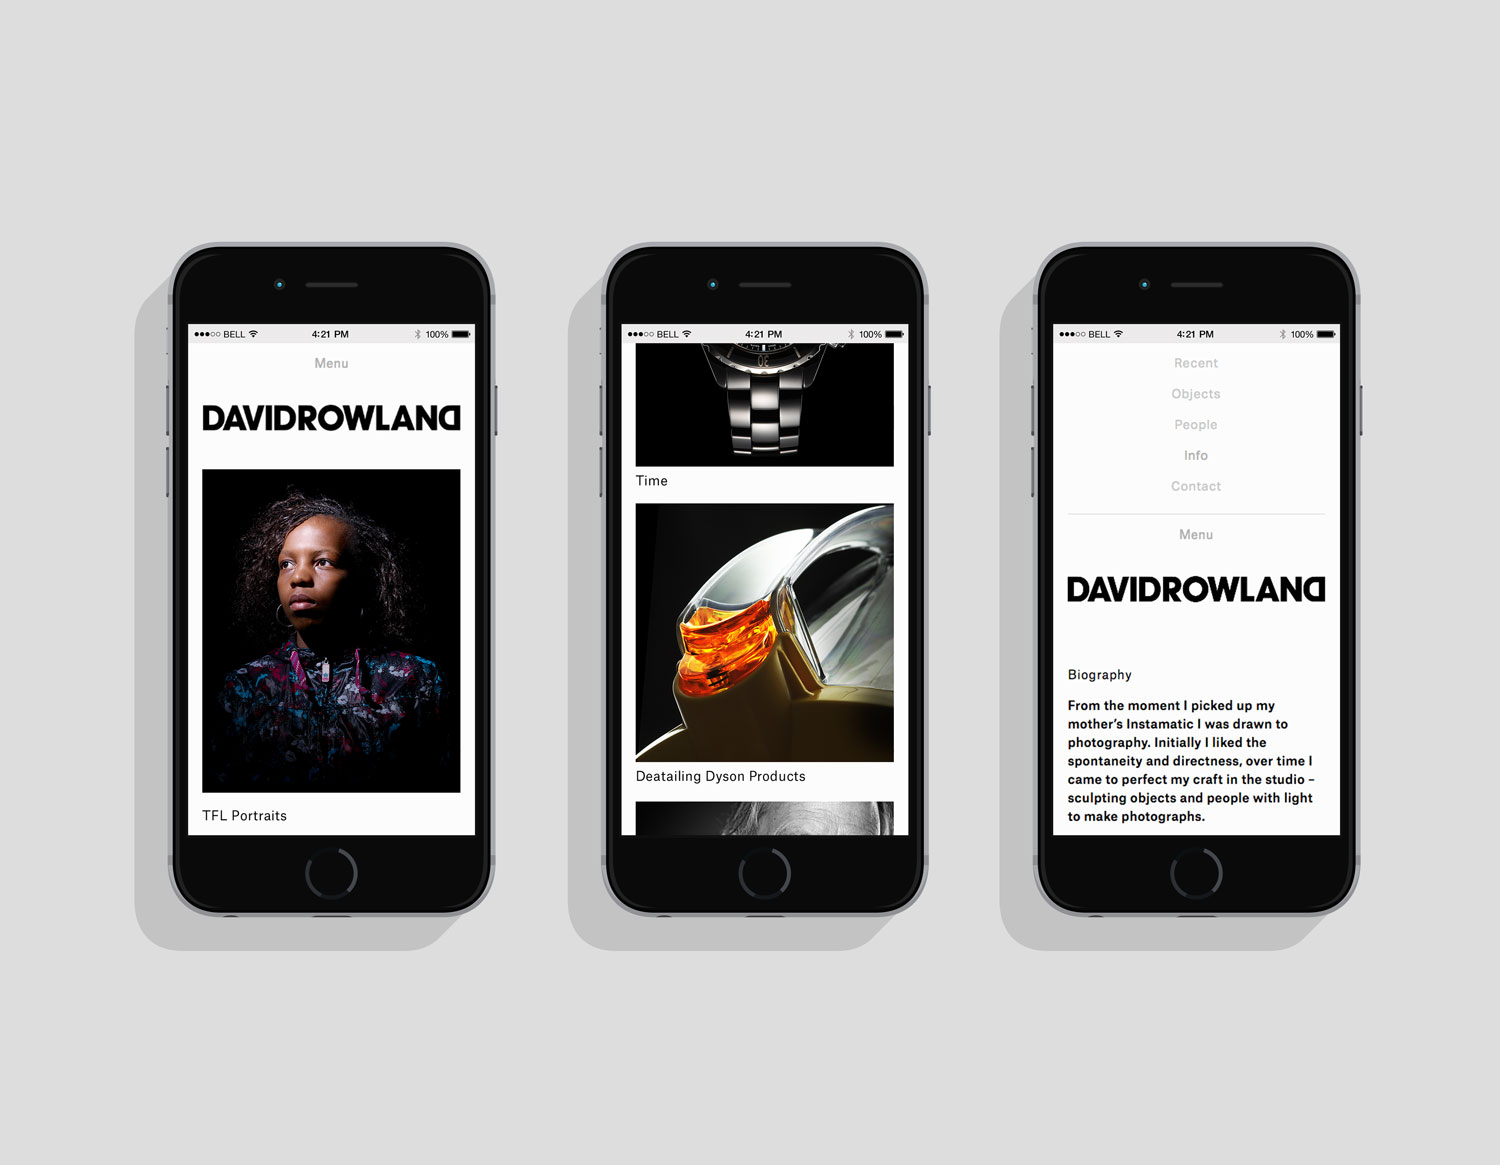 Brand identity and responsive website by London-based graphic design studio ico Design for photographer David Rowland